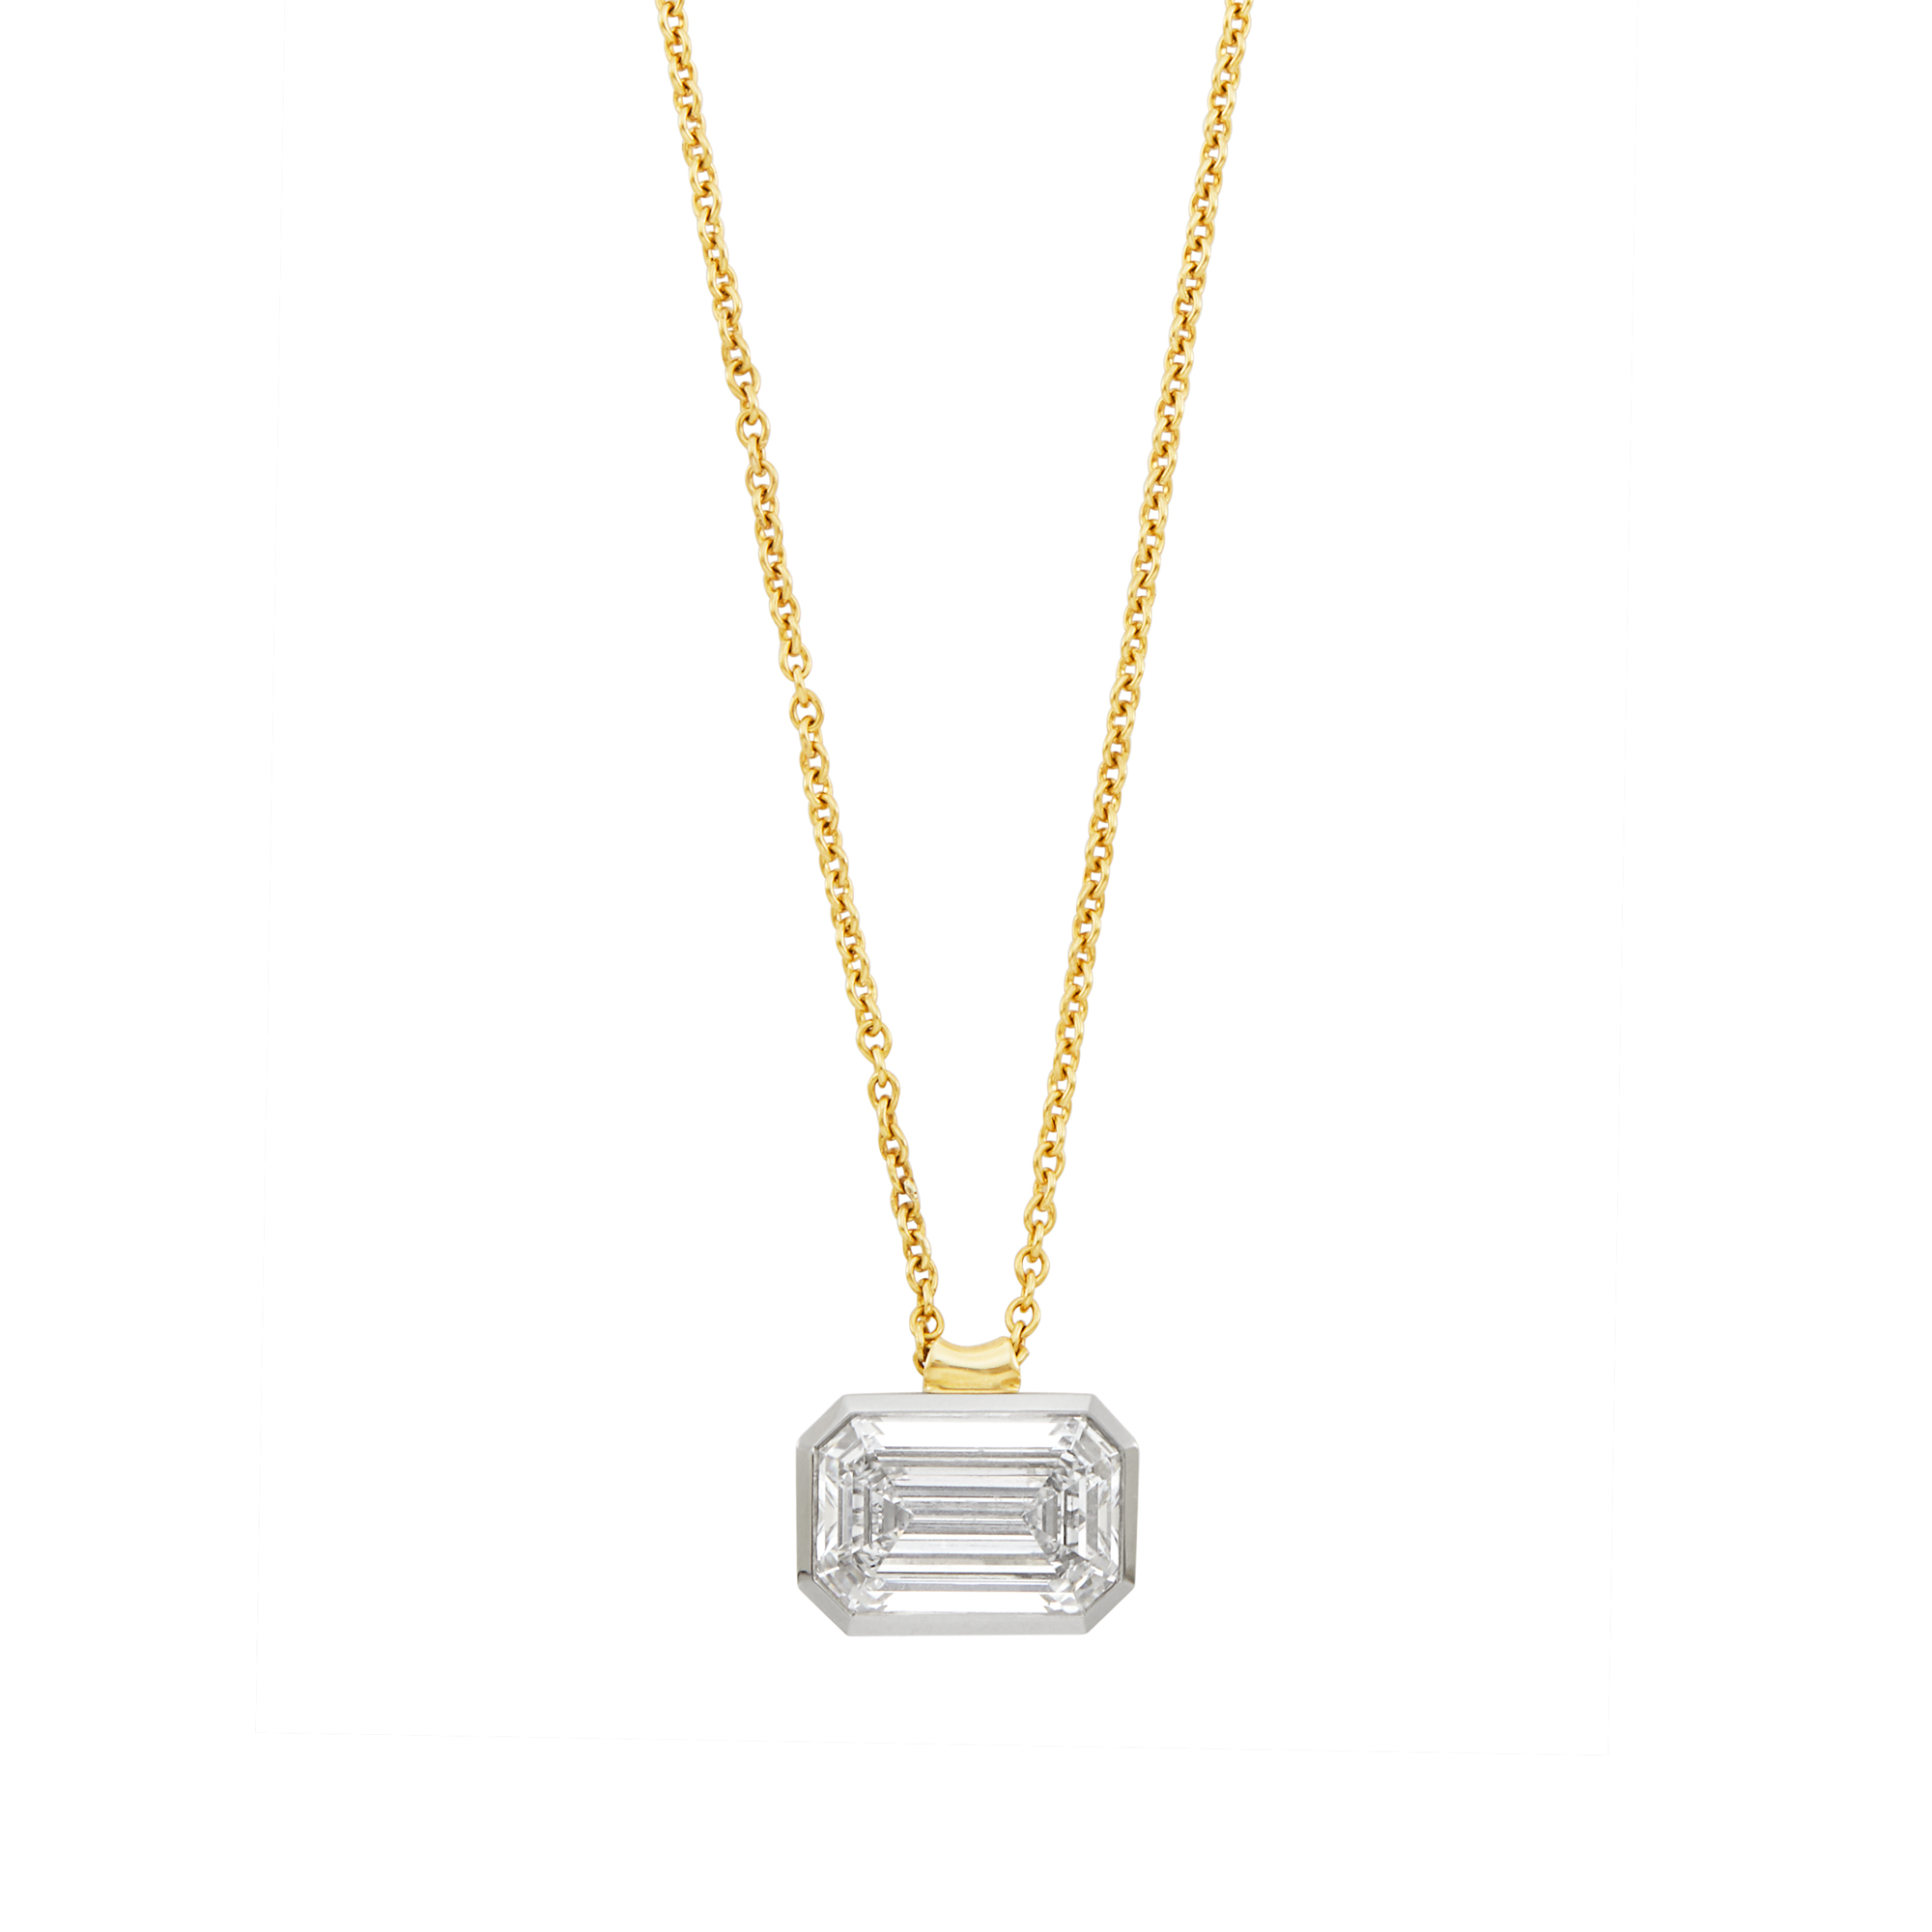 Lot image - Platinum and Diamond Pendant with Gold Chain Necklace, Tiffany & Co.